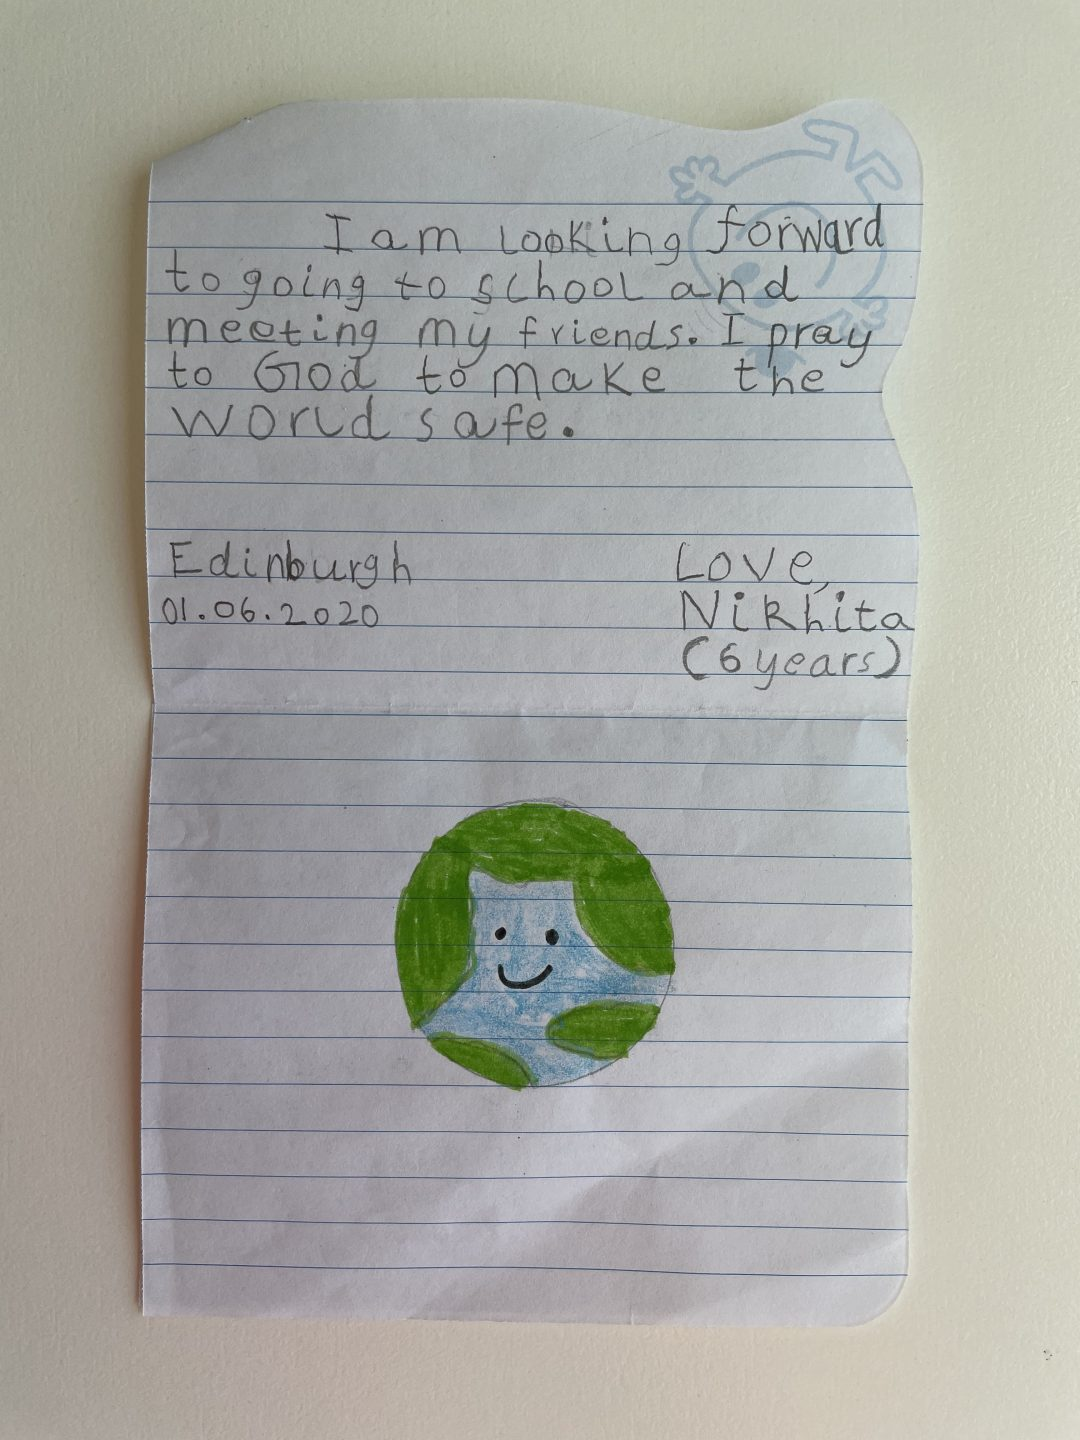 I am looking forward to going to school and meeting my friends. I pray to God to make the world safe.   Edinburgh 01.06.2020  Love,  Nikhita (6 years)  [Drawing of the world with a smiley face]